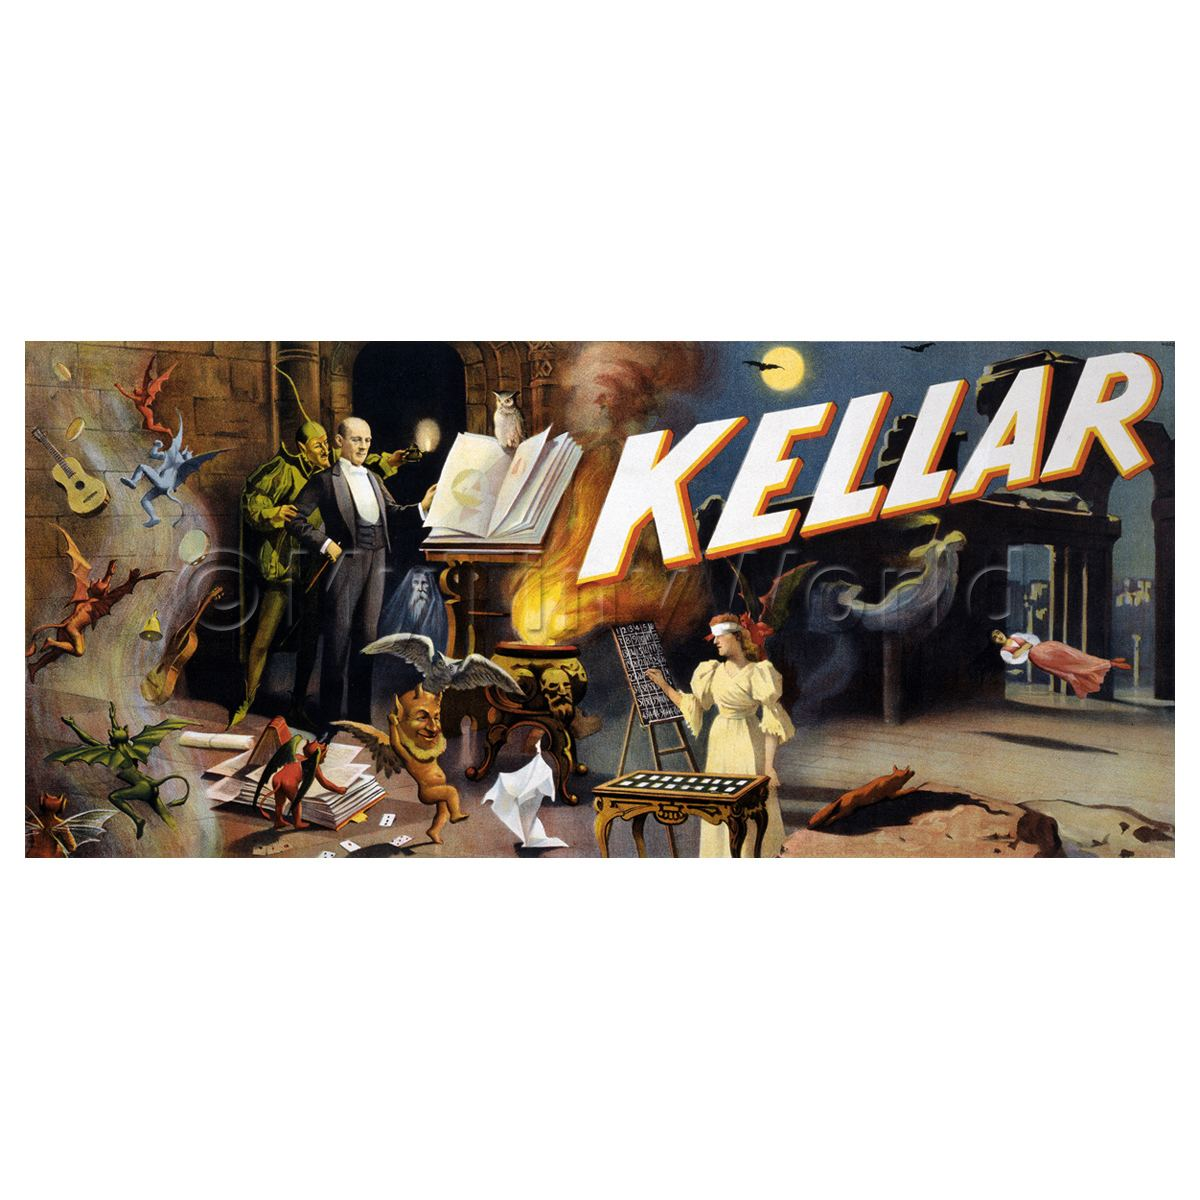 Dolls House Miniature Kellar Magic Poster - Huge Poster